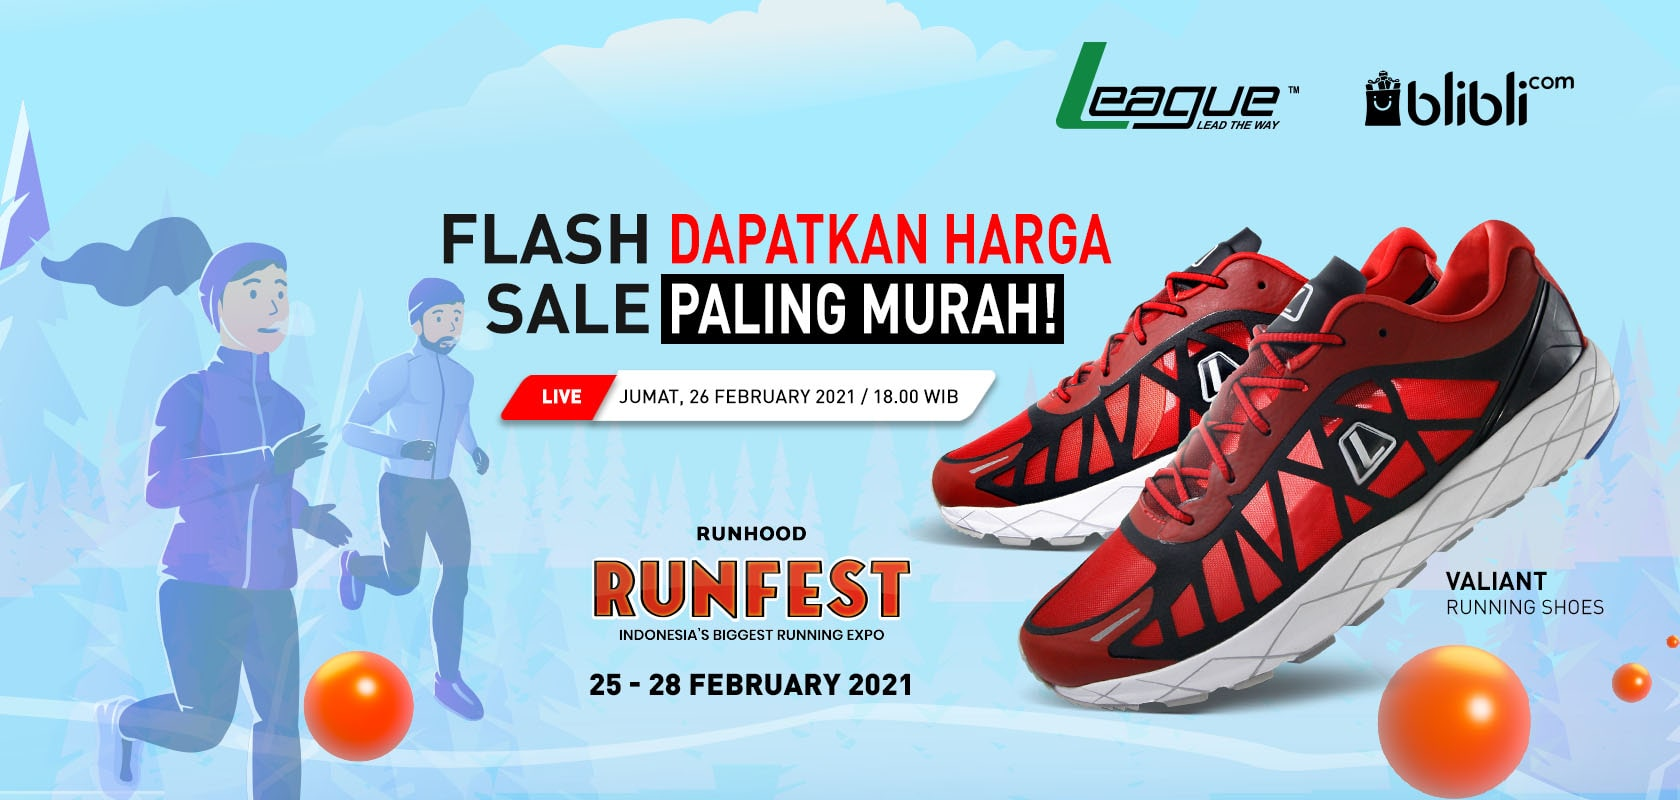 League | Runfest